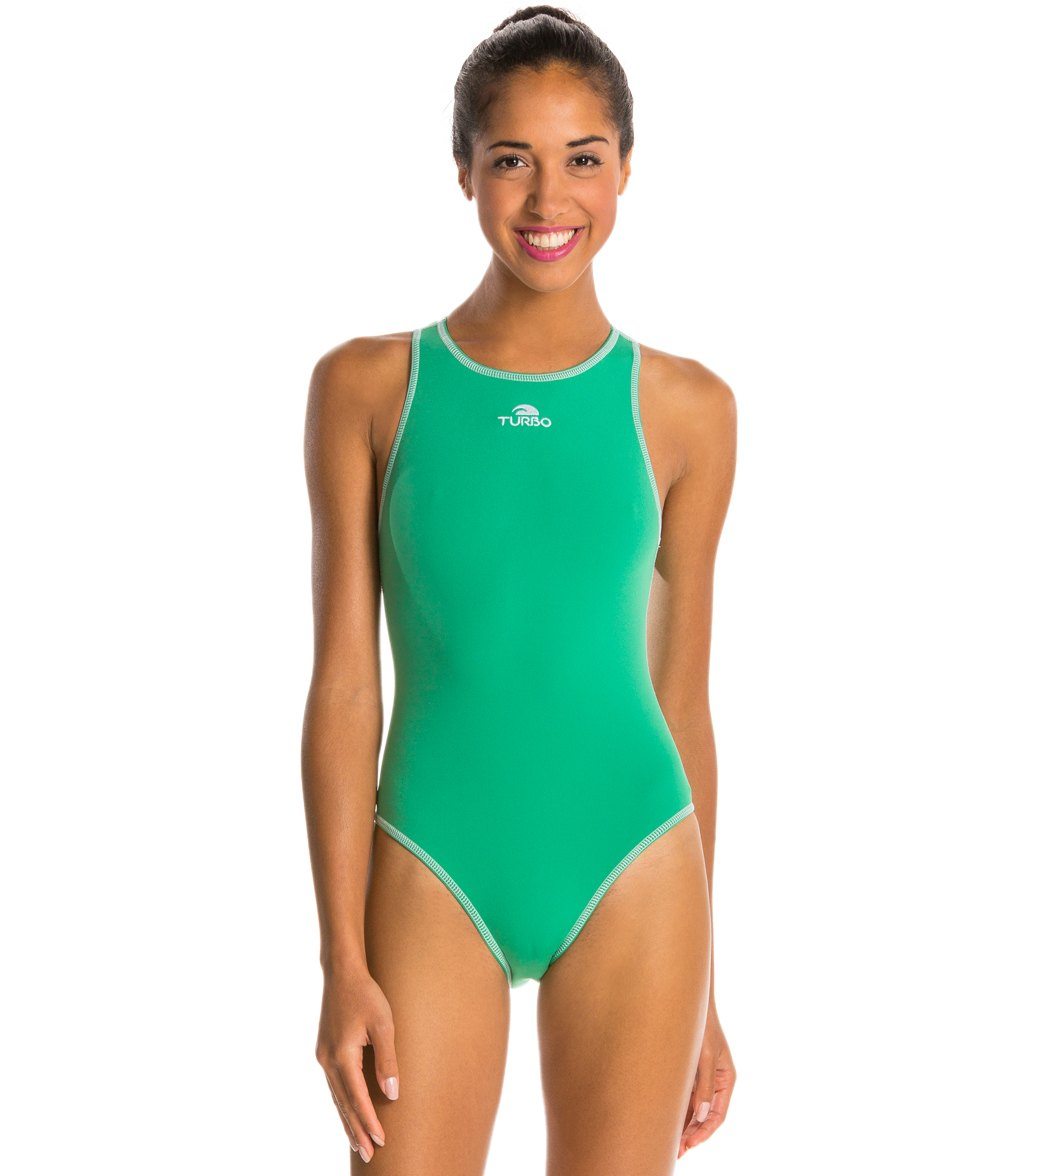 Turbo Women s Comfort Water Polo Suit at SwimOutlet.com - Free Shipping 12c0a7af4d